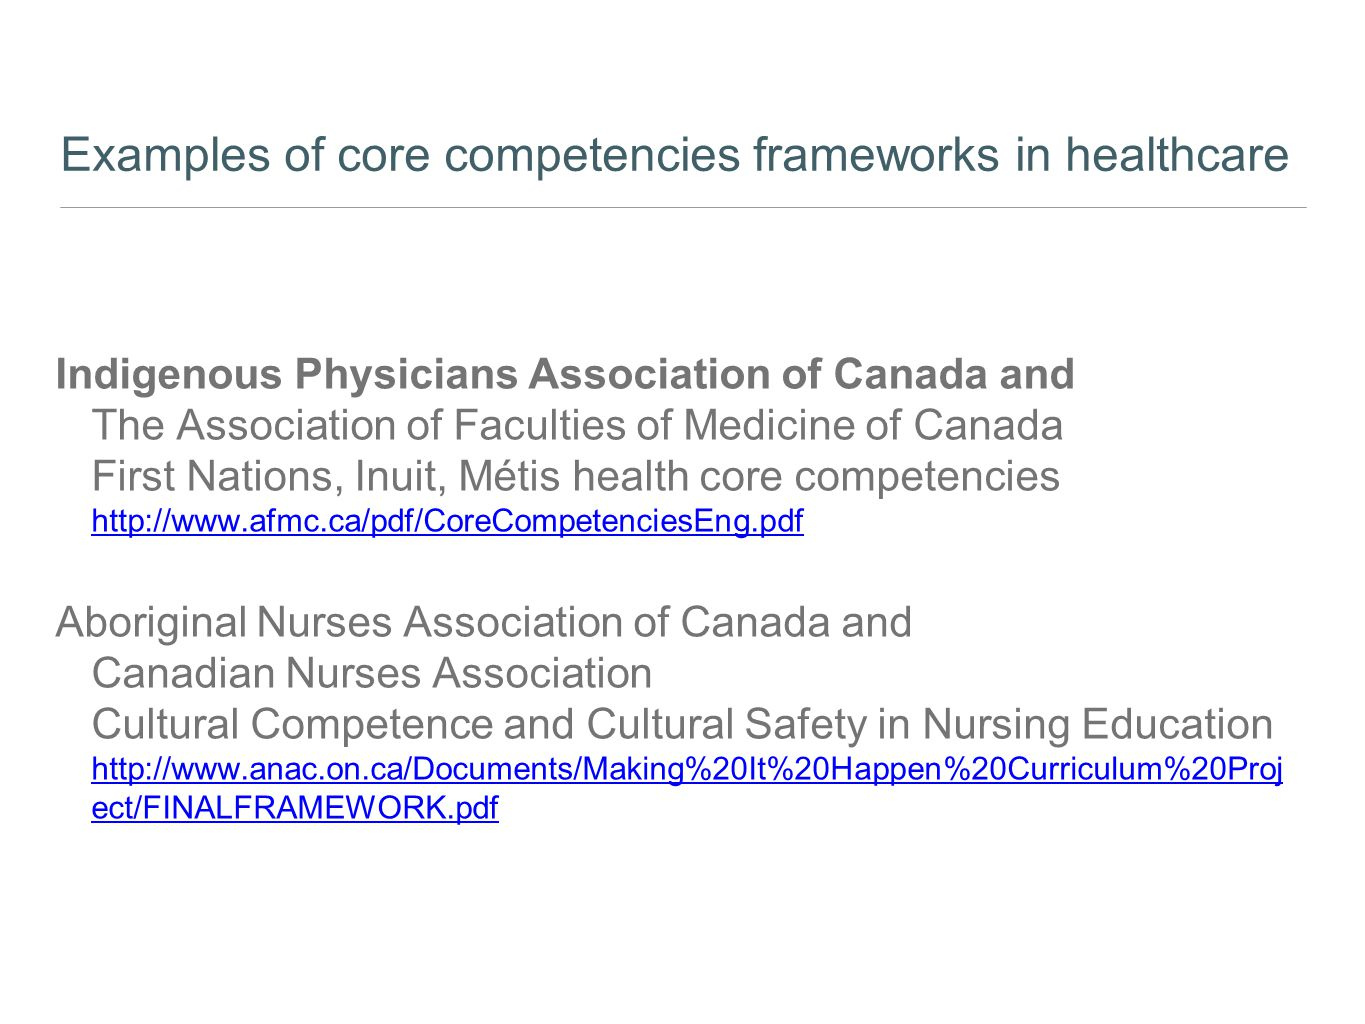 Examples of core competencies frameworks in healthcare